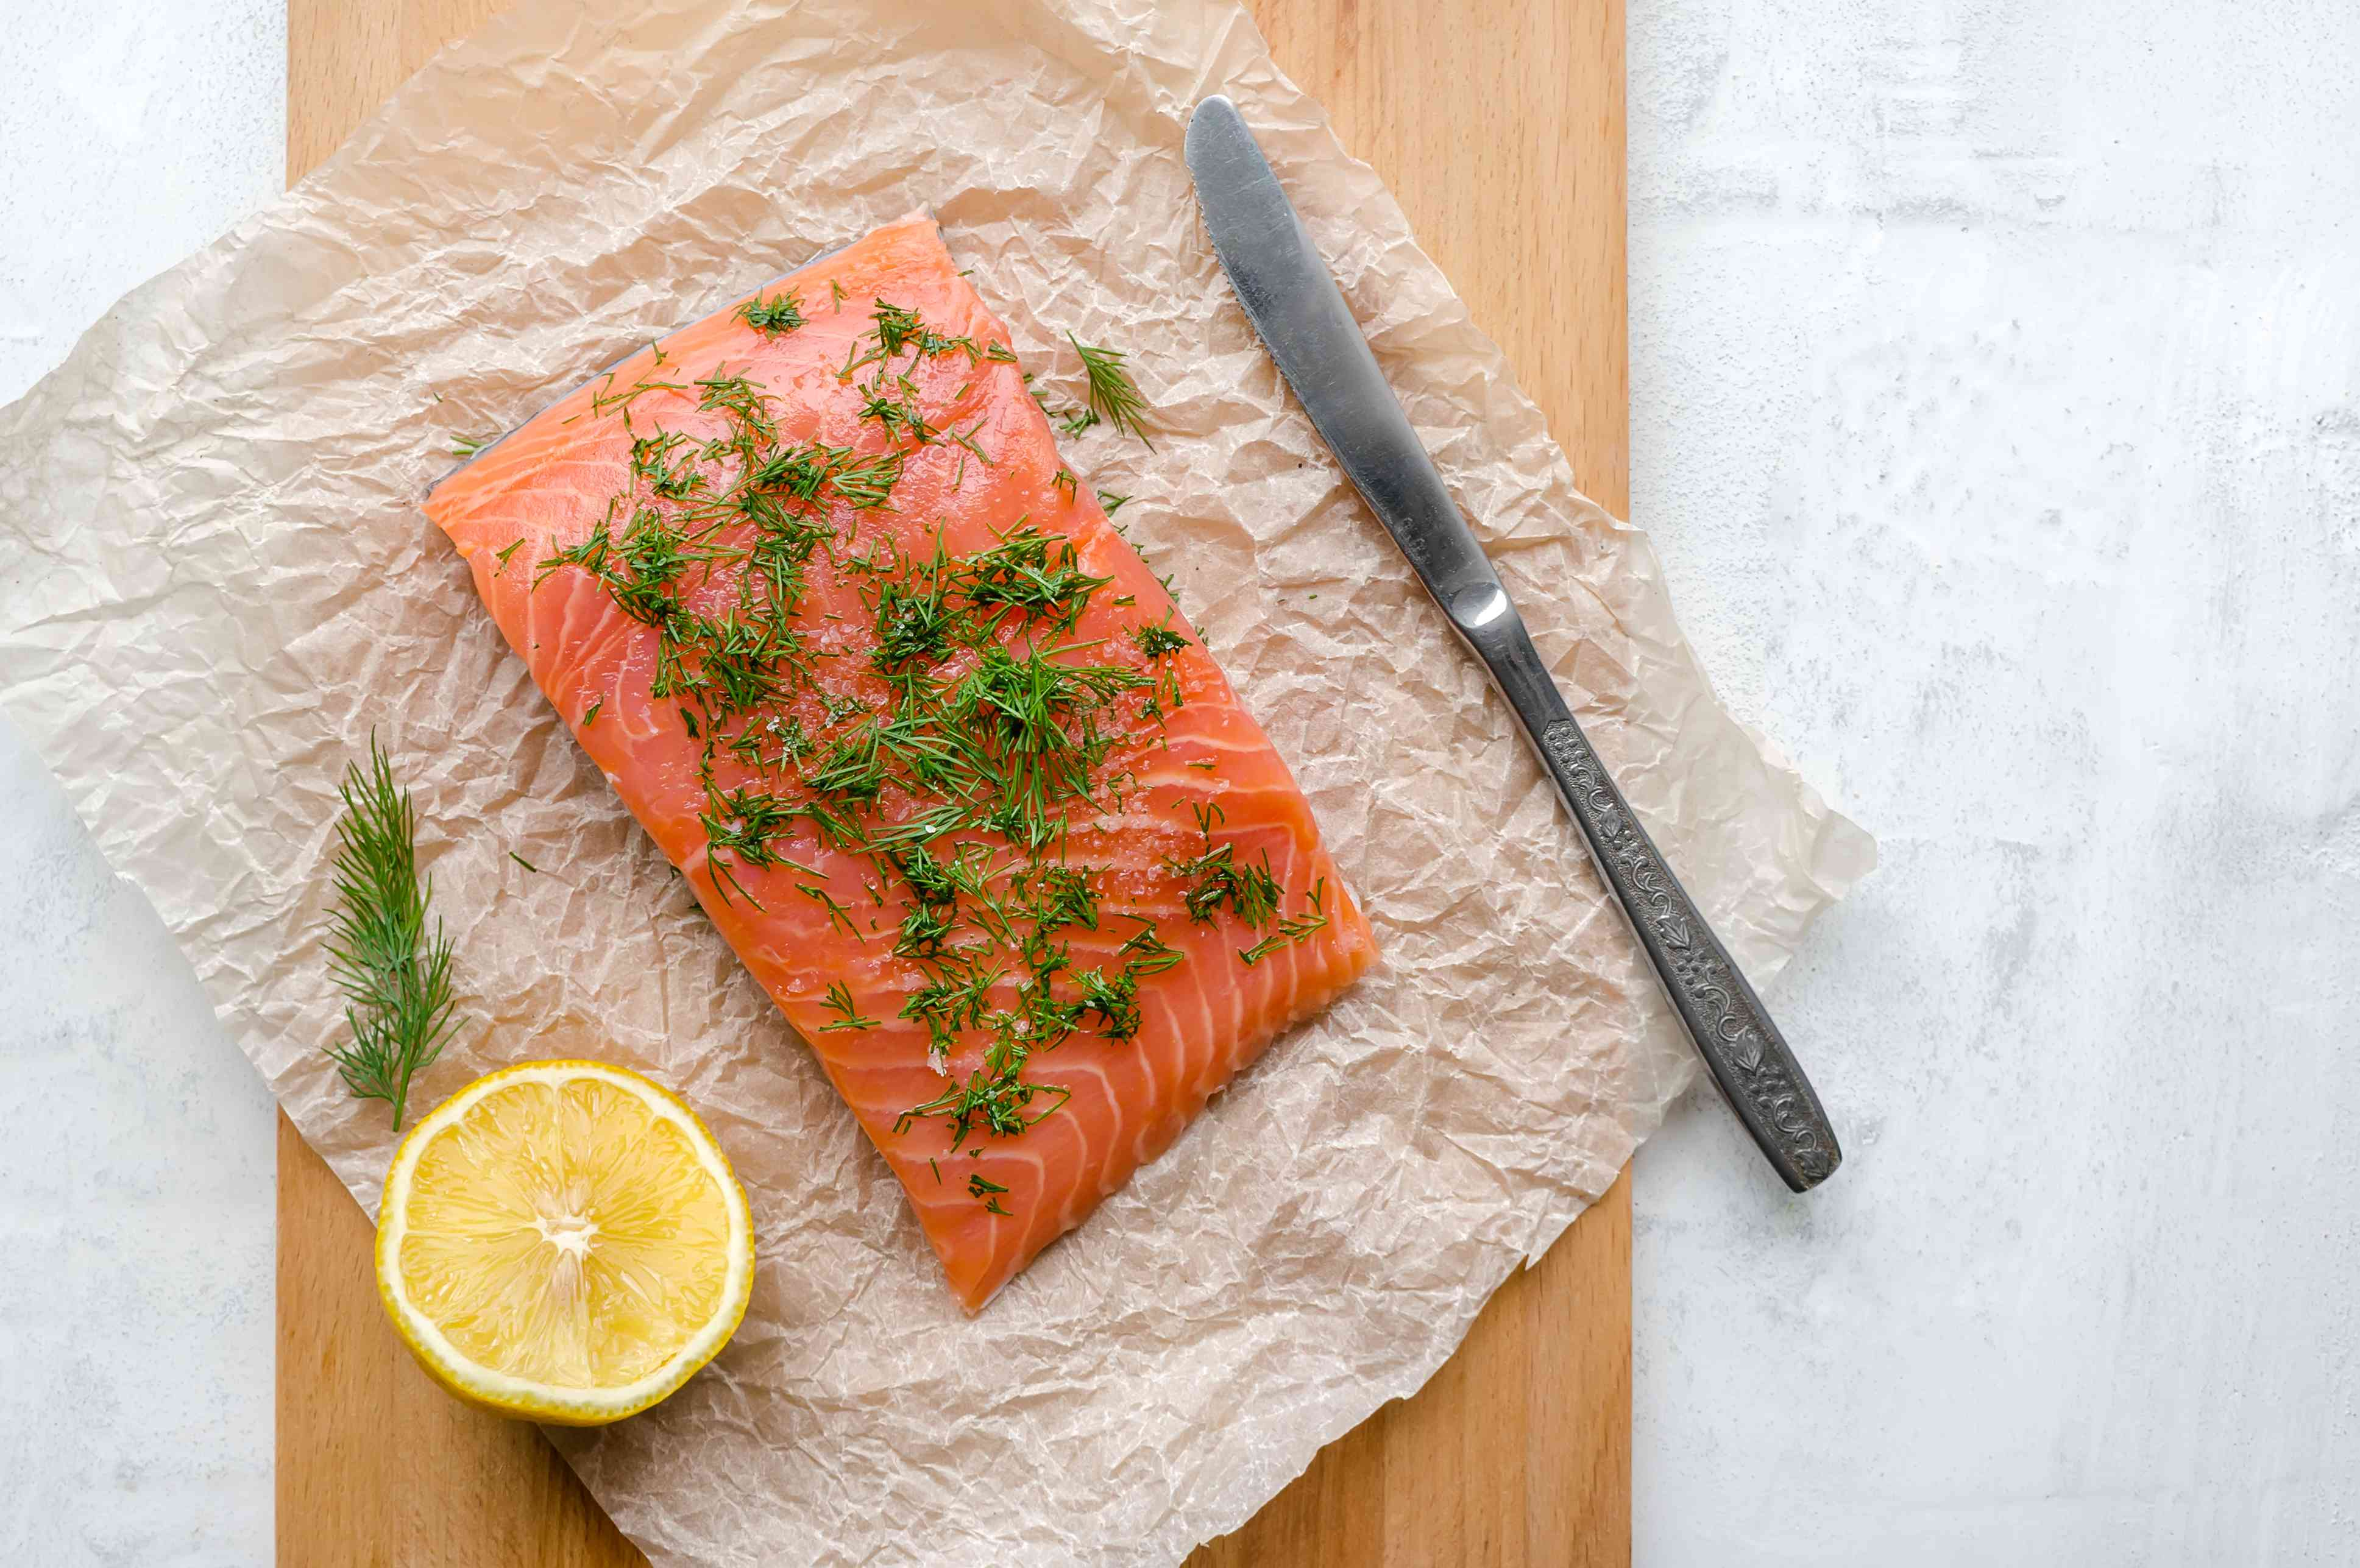 Gravlax. Salted salmon steak with dil. Top view.